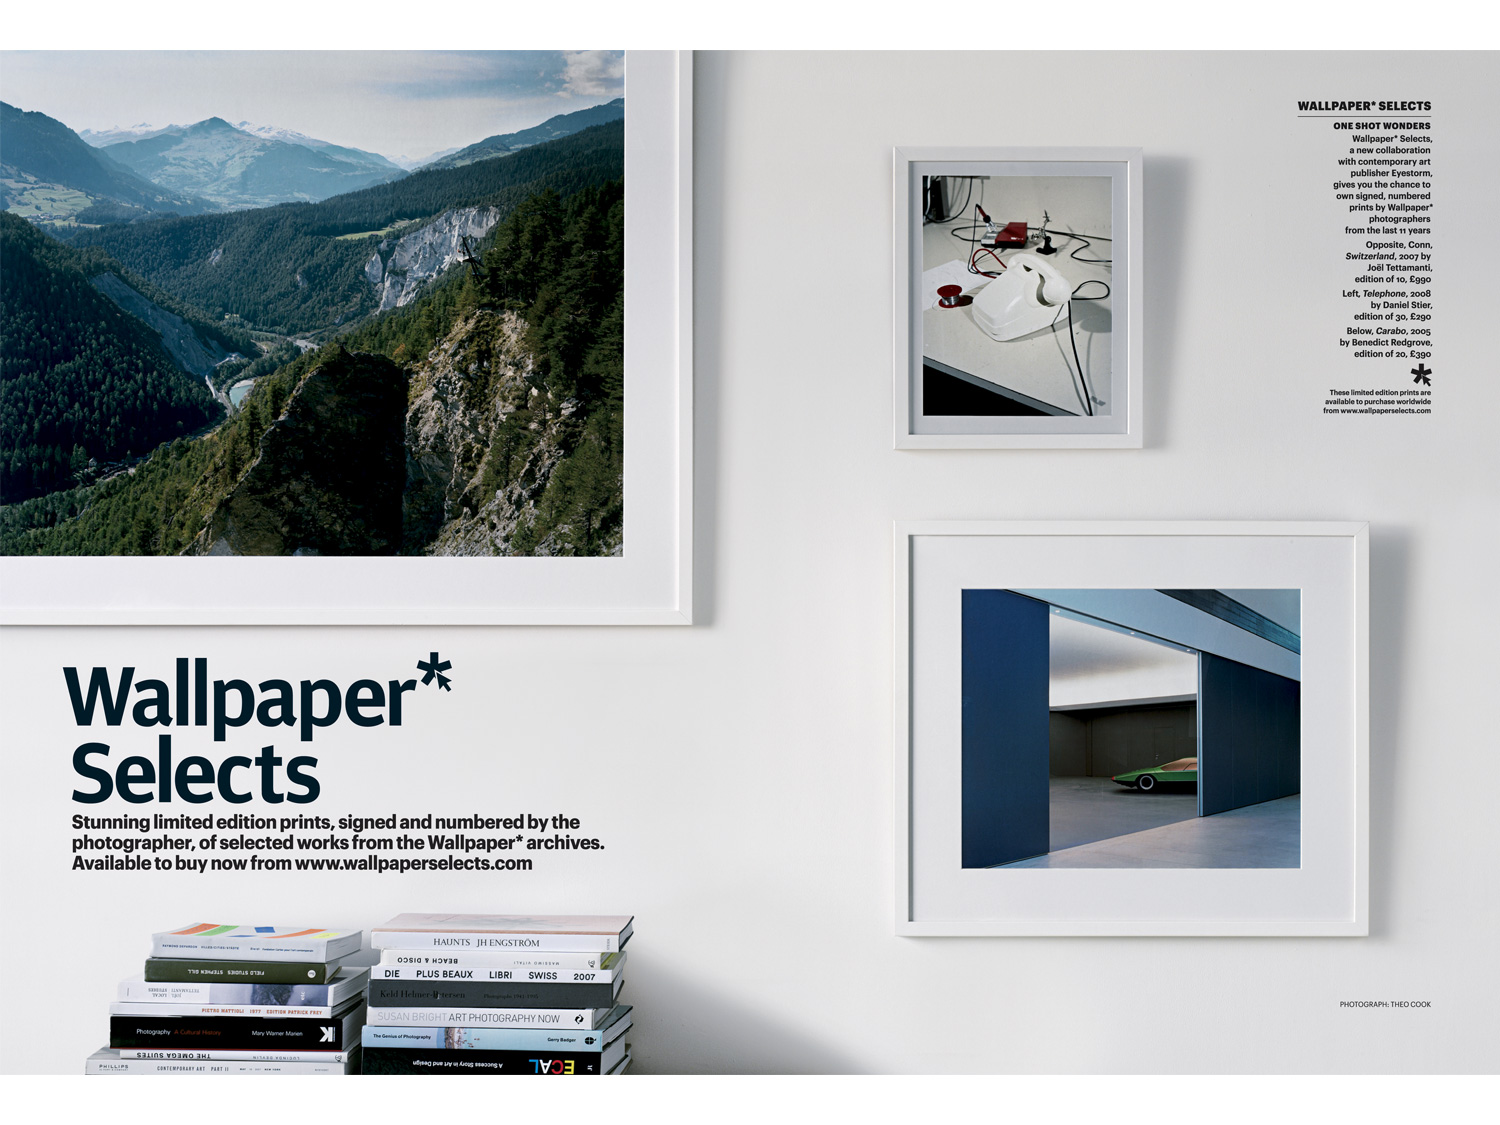 15/31 – Wallpaper Selects ad at Wallpaper*, photo: Theo Cook